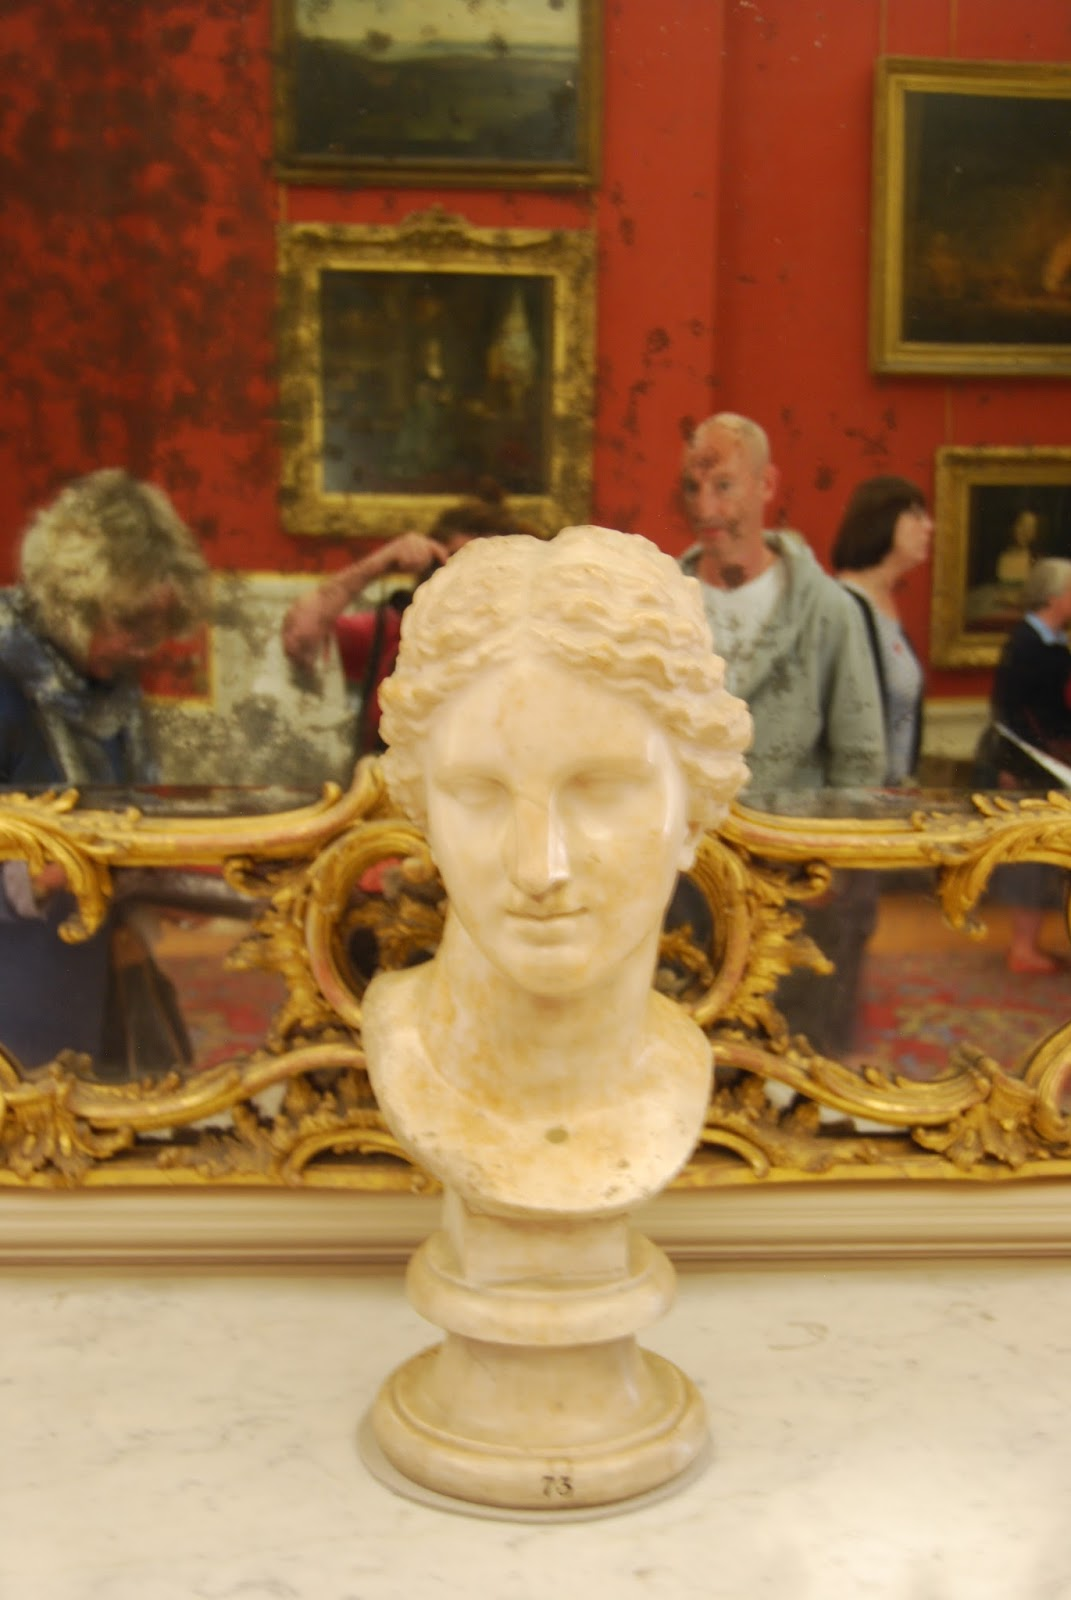 Head of Aphrodite, Petworth House, photo by Modern Bric a Brac